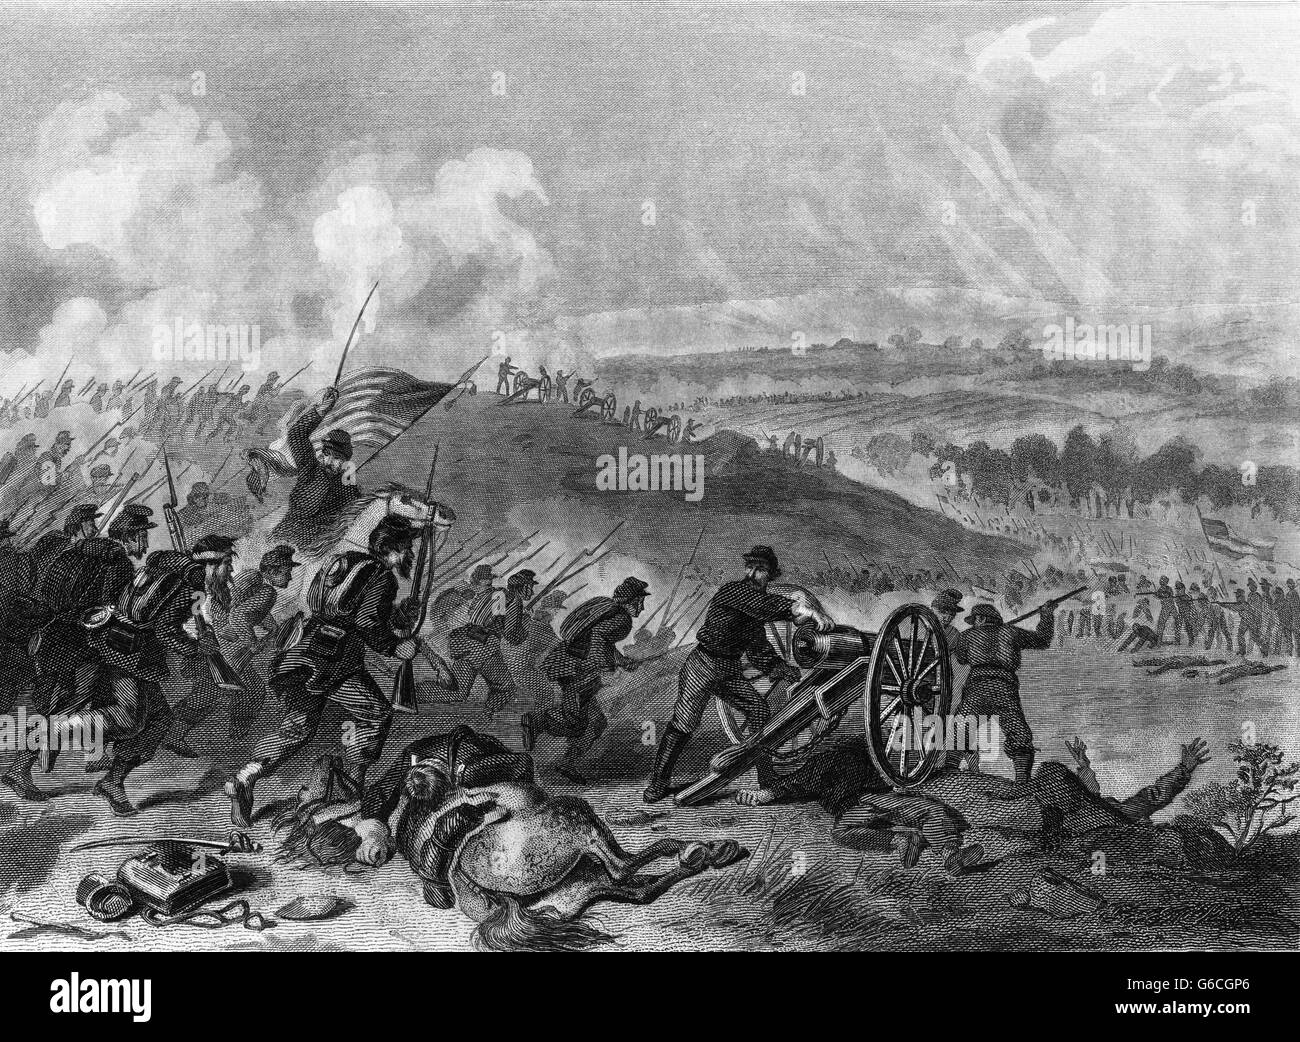 1860s JULY 1863 BATTLE OF GETTYSBURG FINAL CHARGE OF UNION FORCES AT CEMETERY HILL - Stock Image